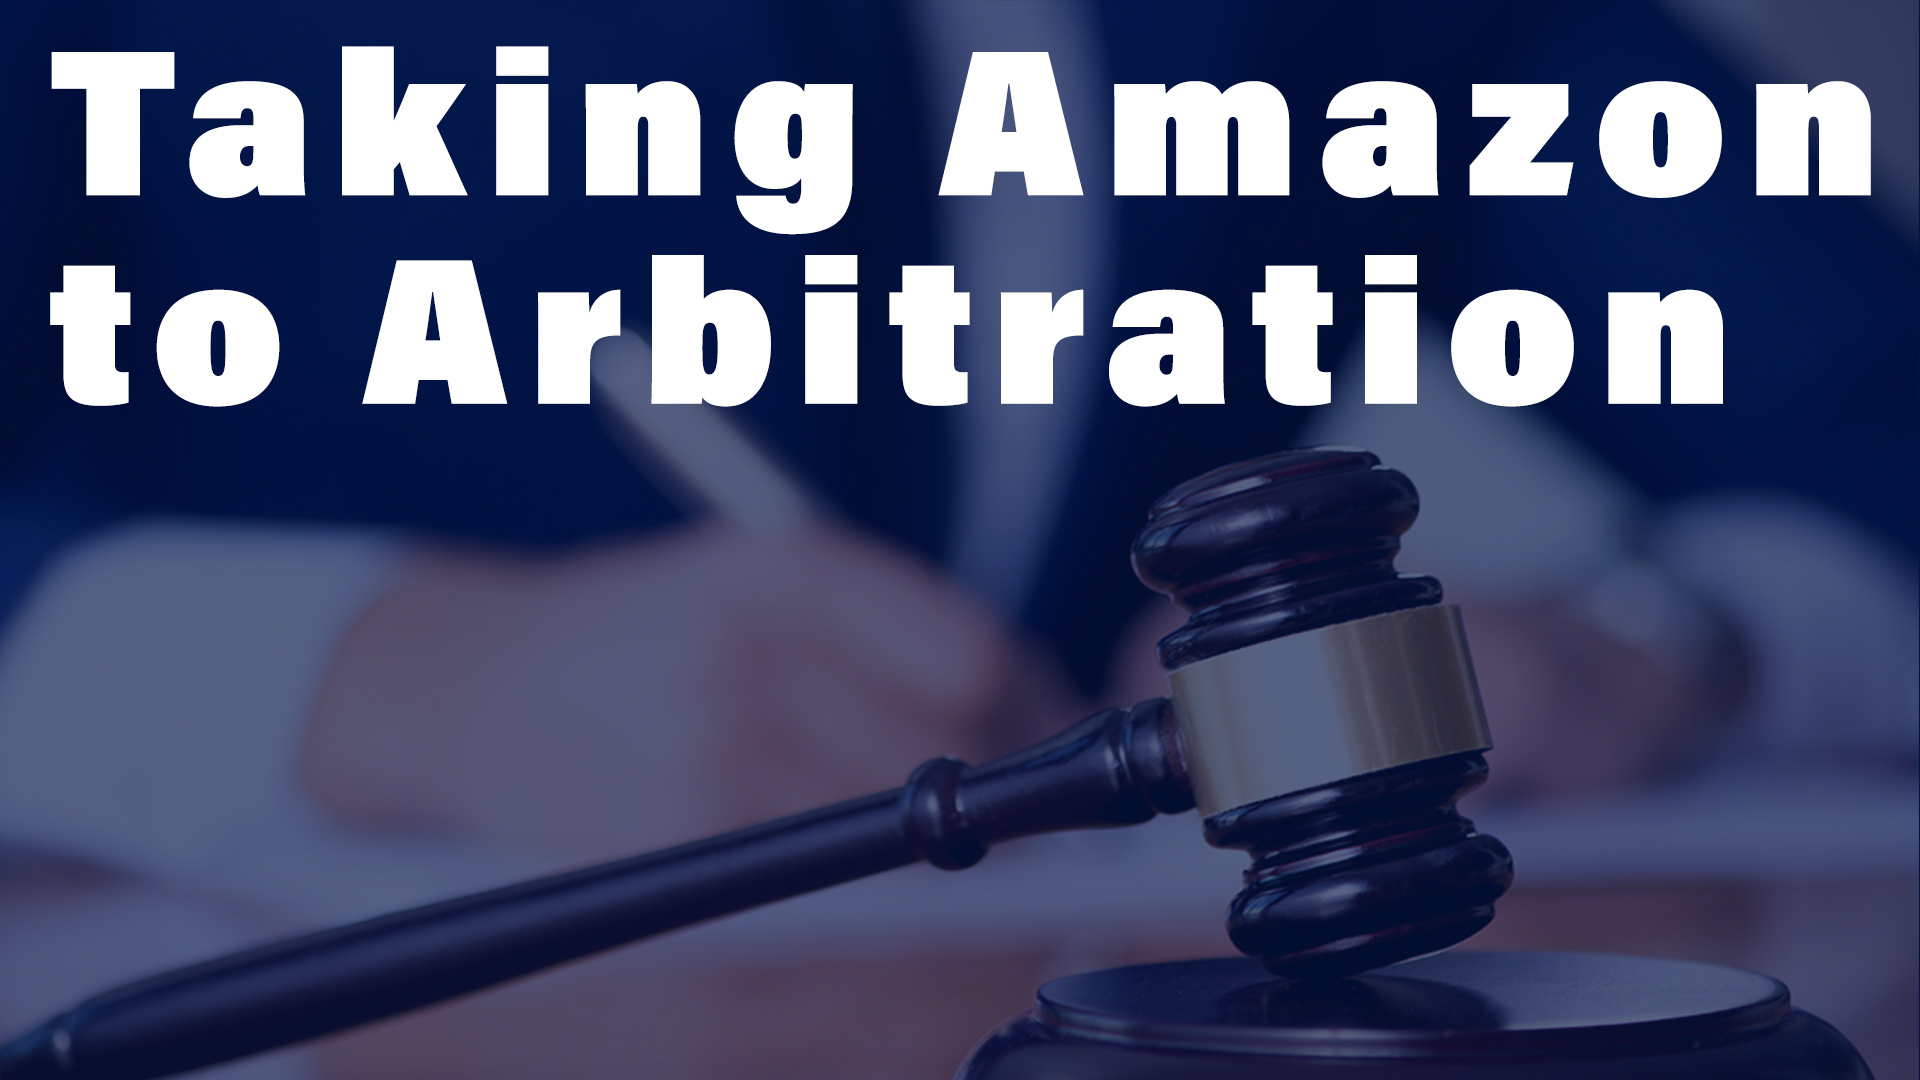 taking Amazon to arbitration